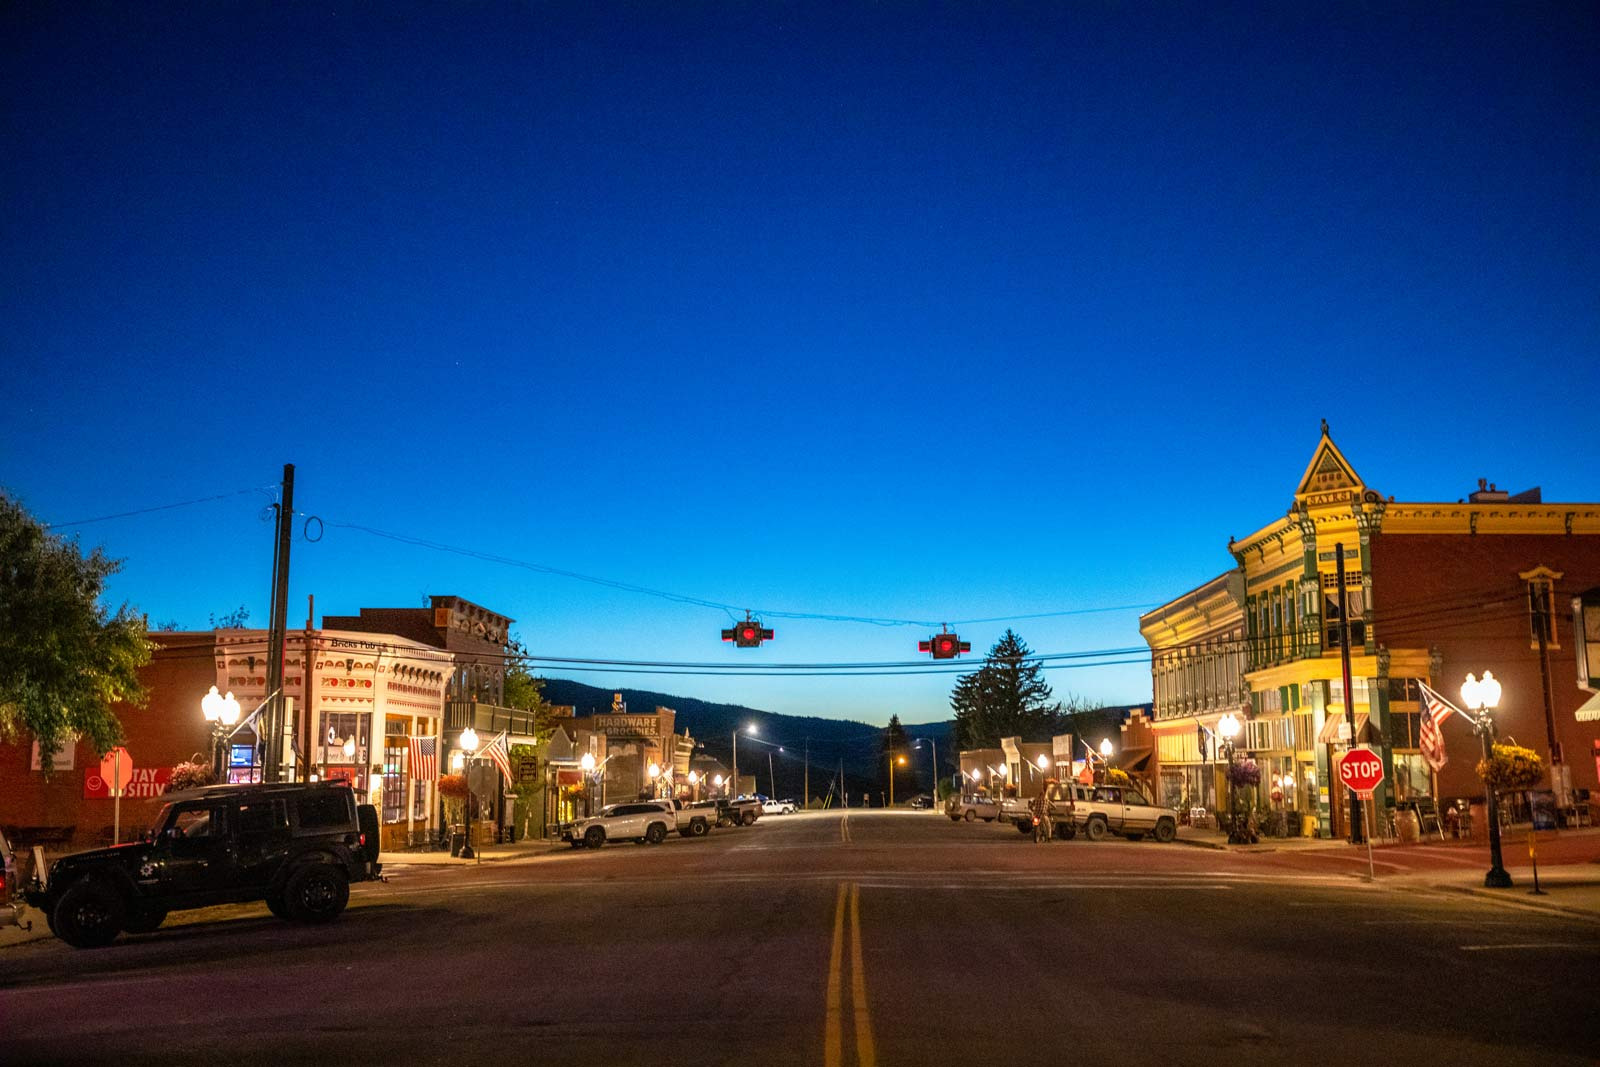 Broadway Street during a summer evening in Philipsburg, Montana.